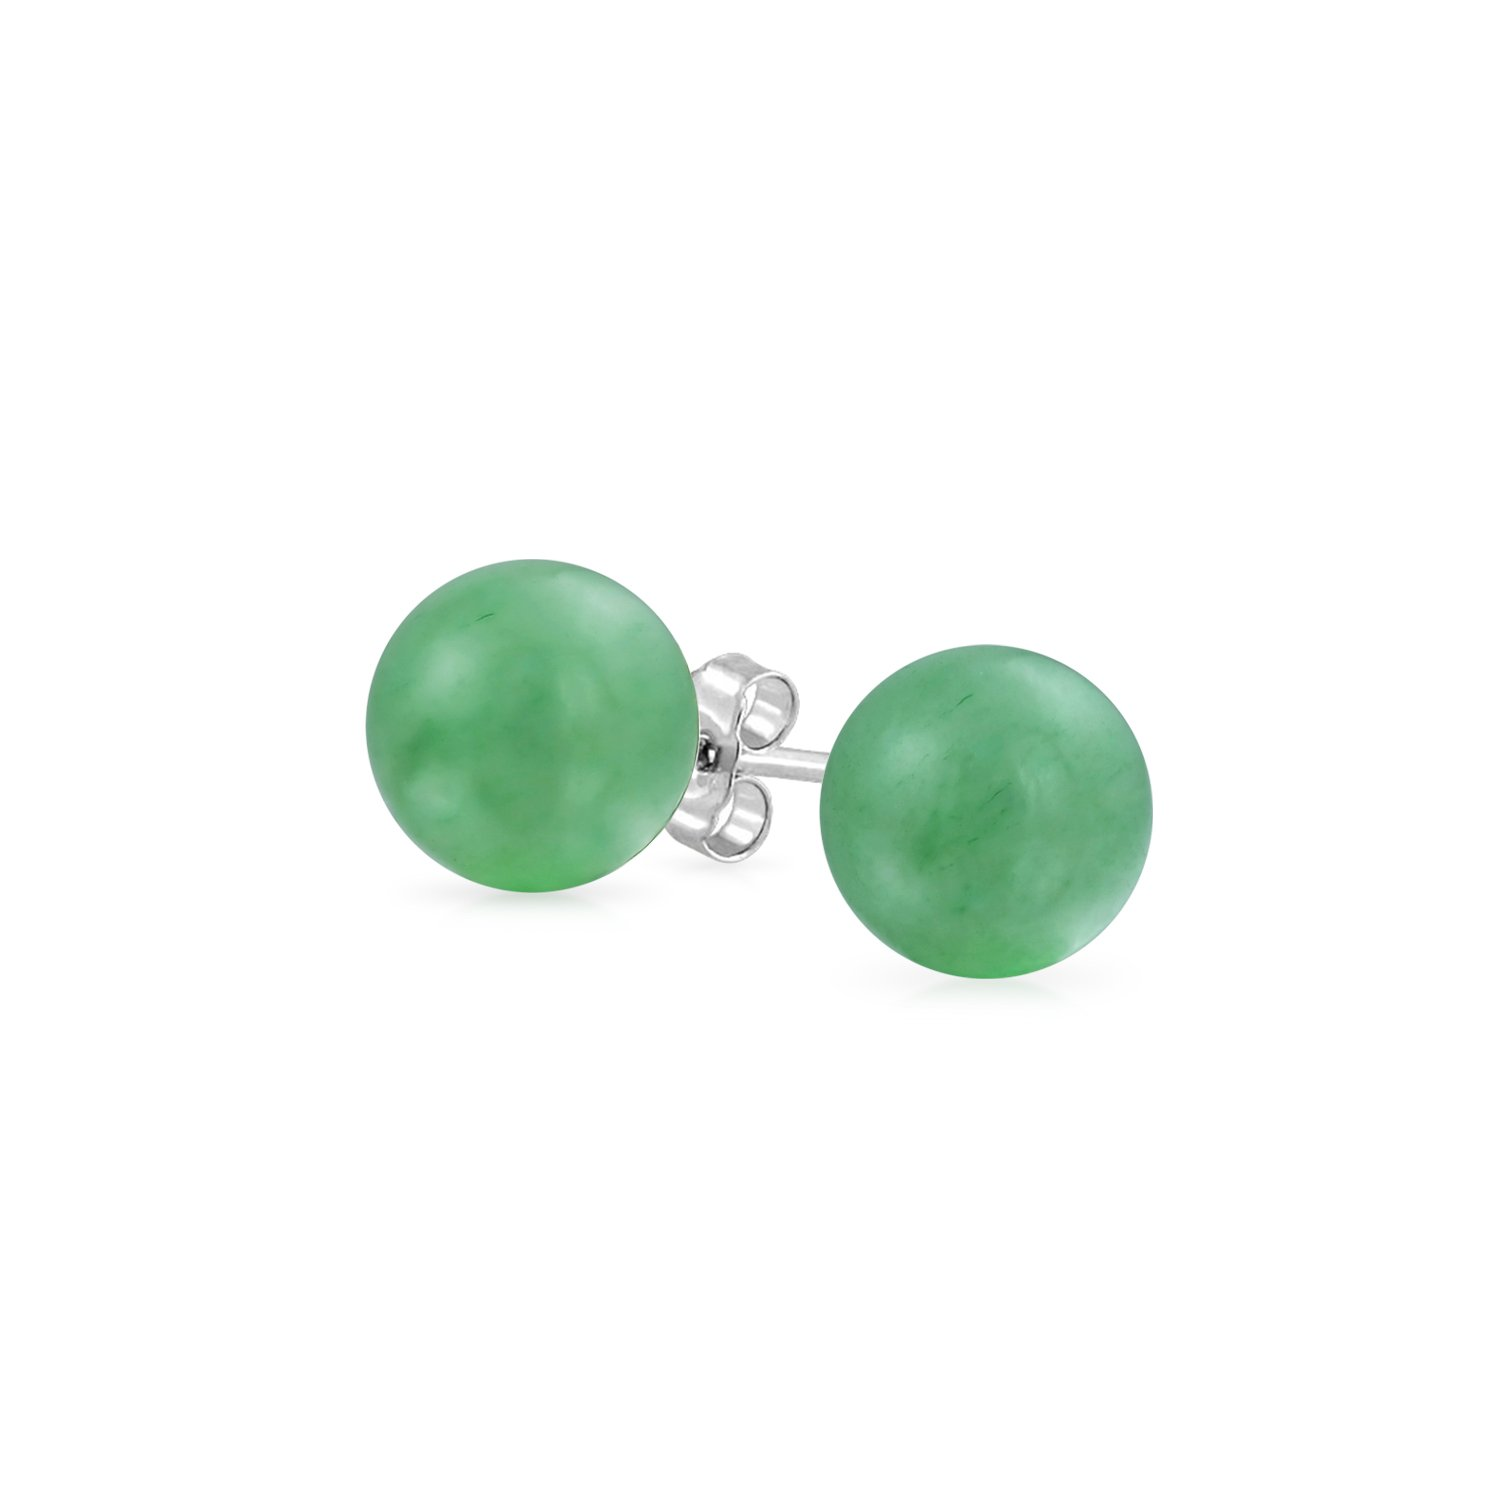 Bling Jewelry 925 Sterling Silver Dyed Aventurine Ball Stud Earrings YP-JADE-STUD-10